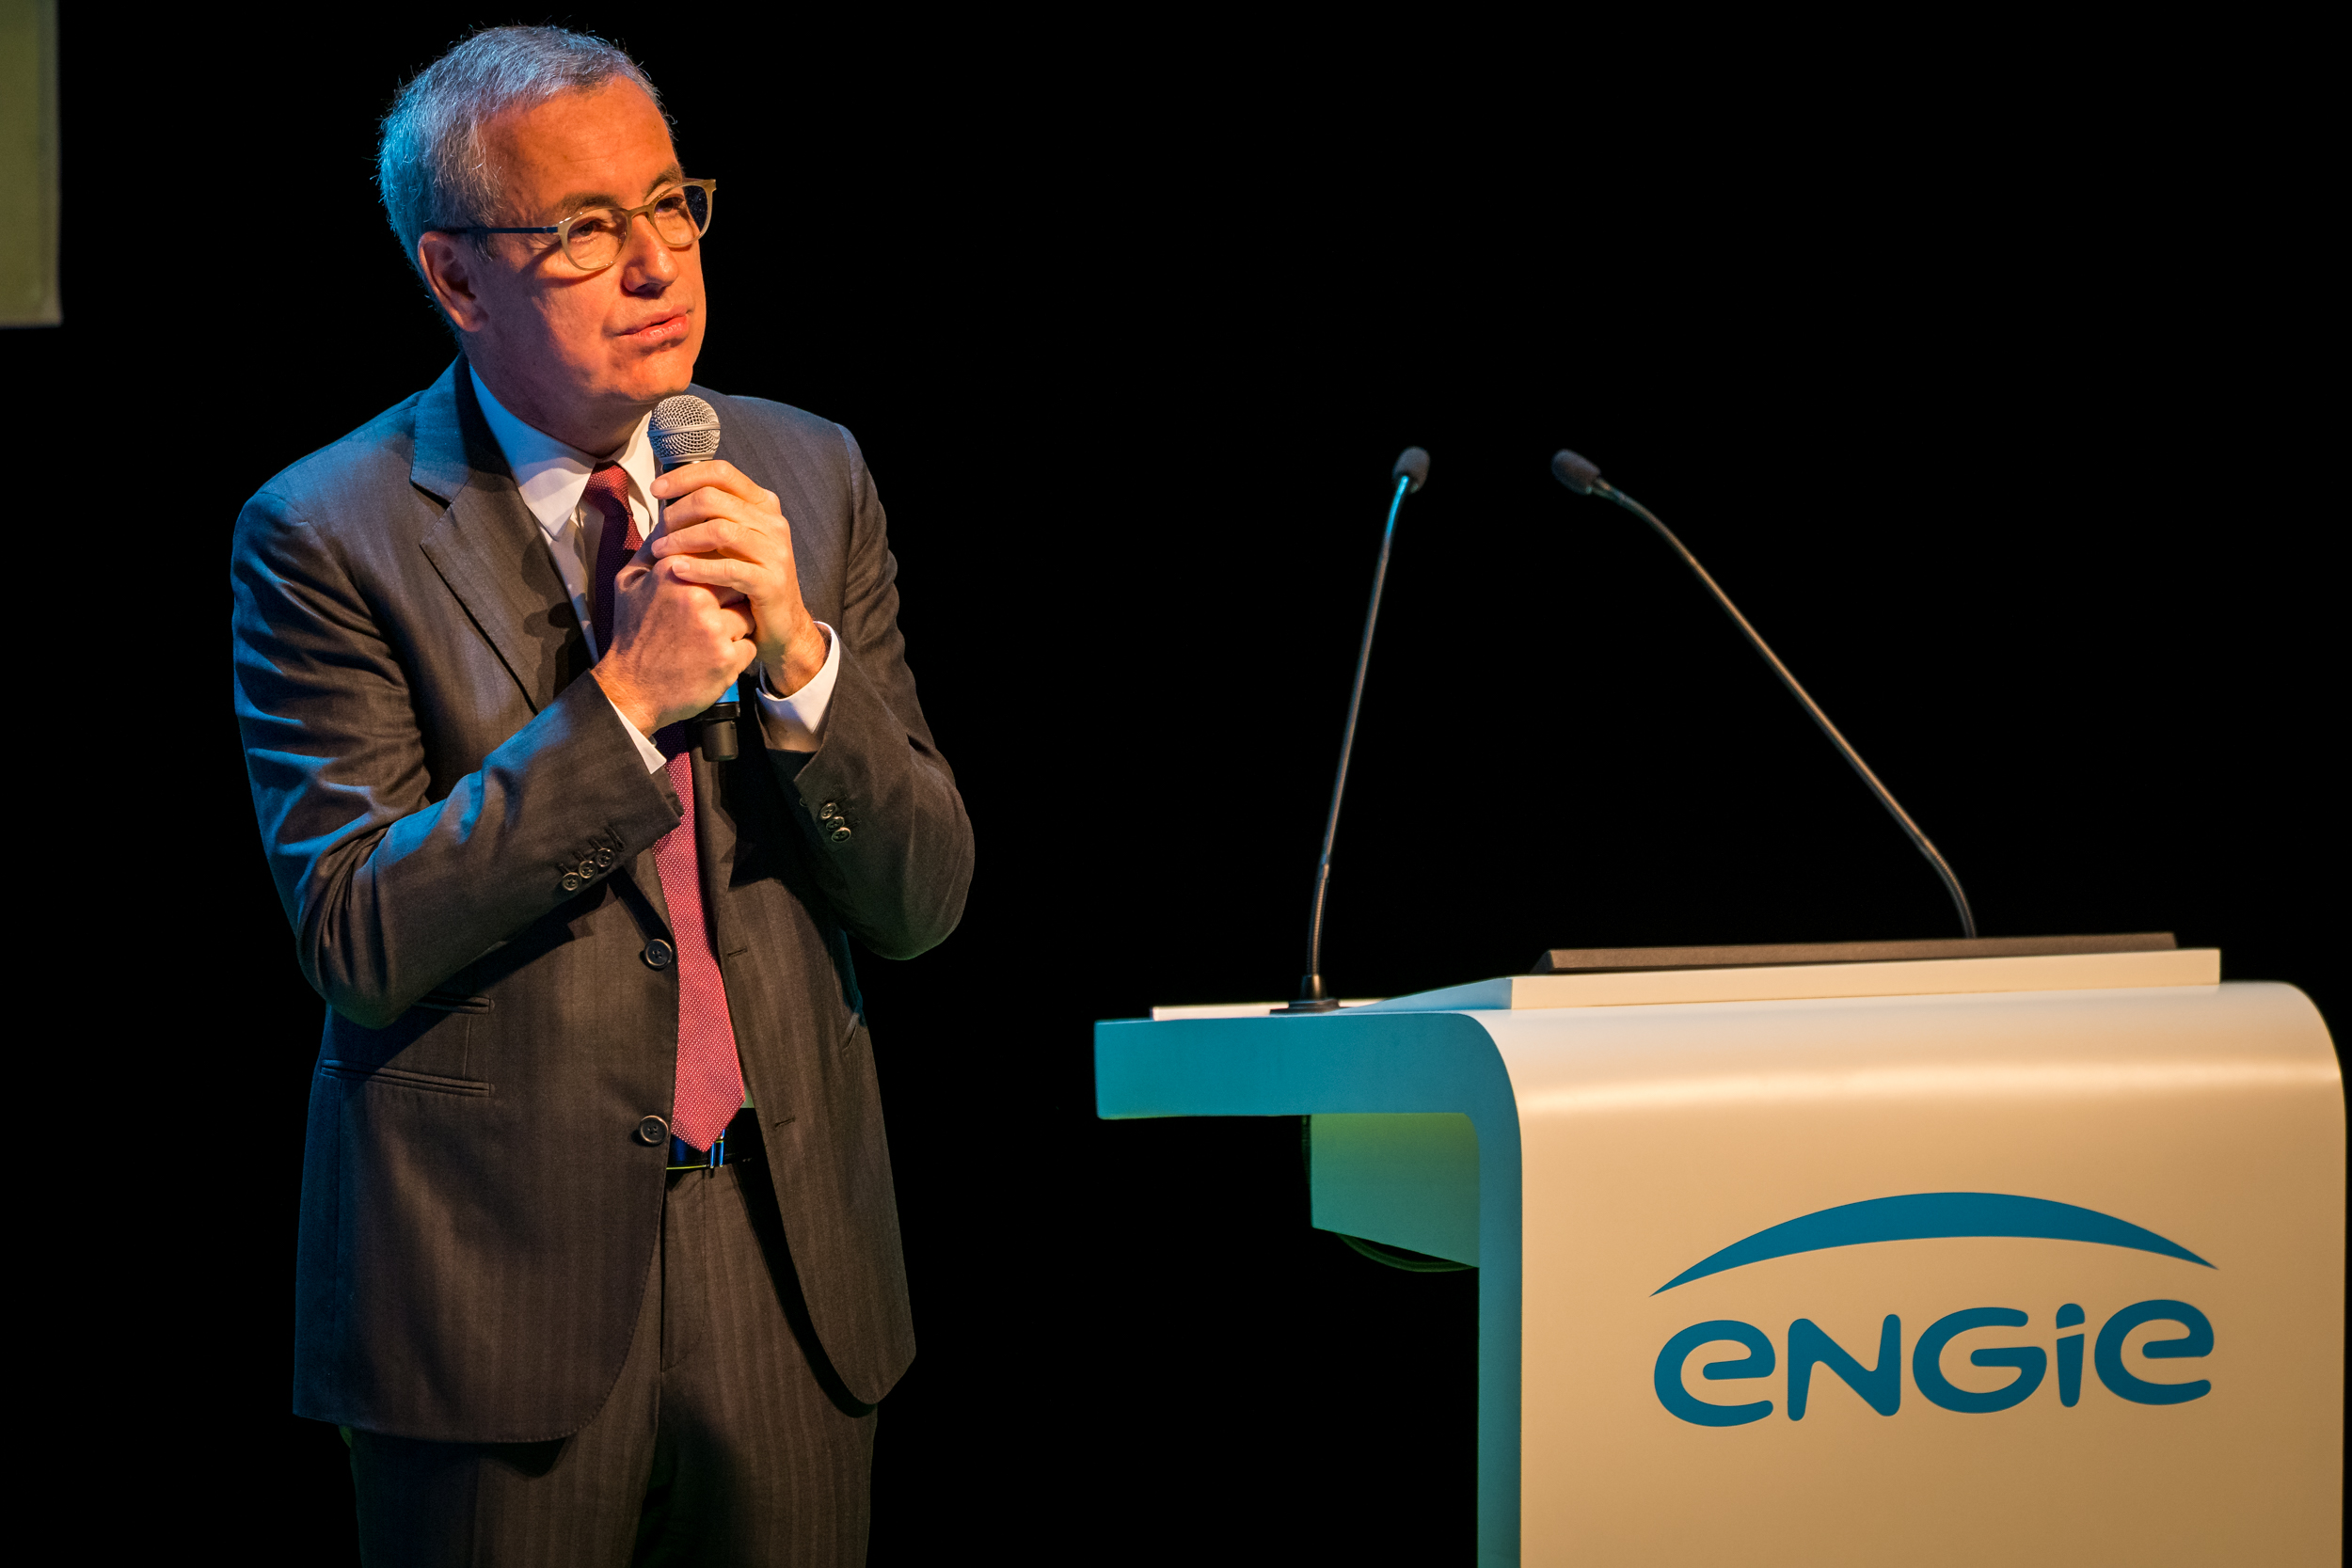 Engie_Convention France_21-05-19_Florian Leger_HD_N°-125.jpg